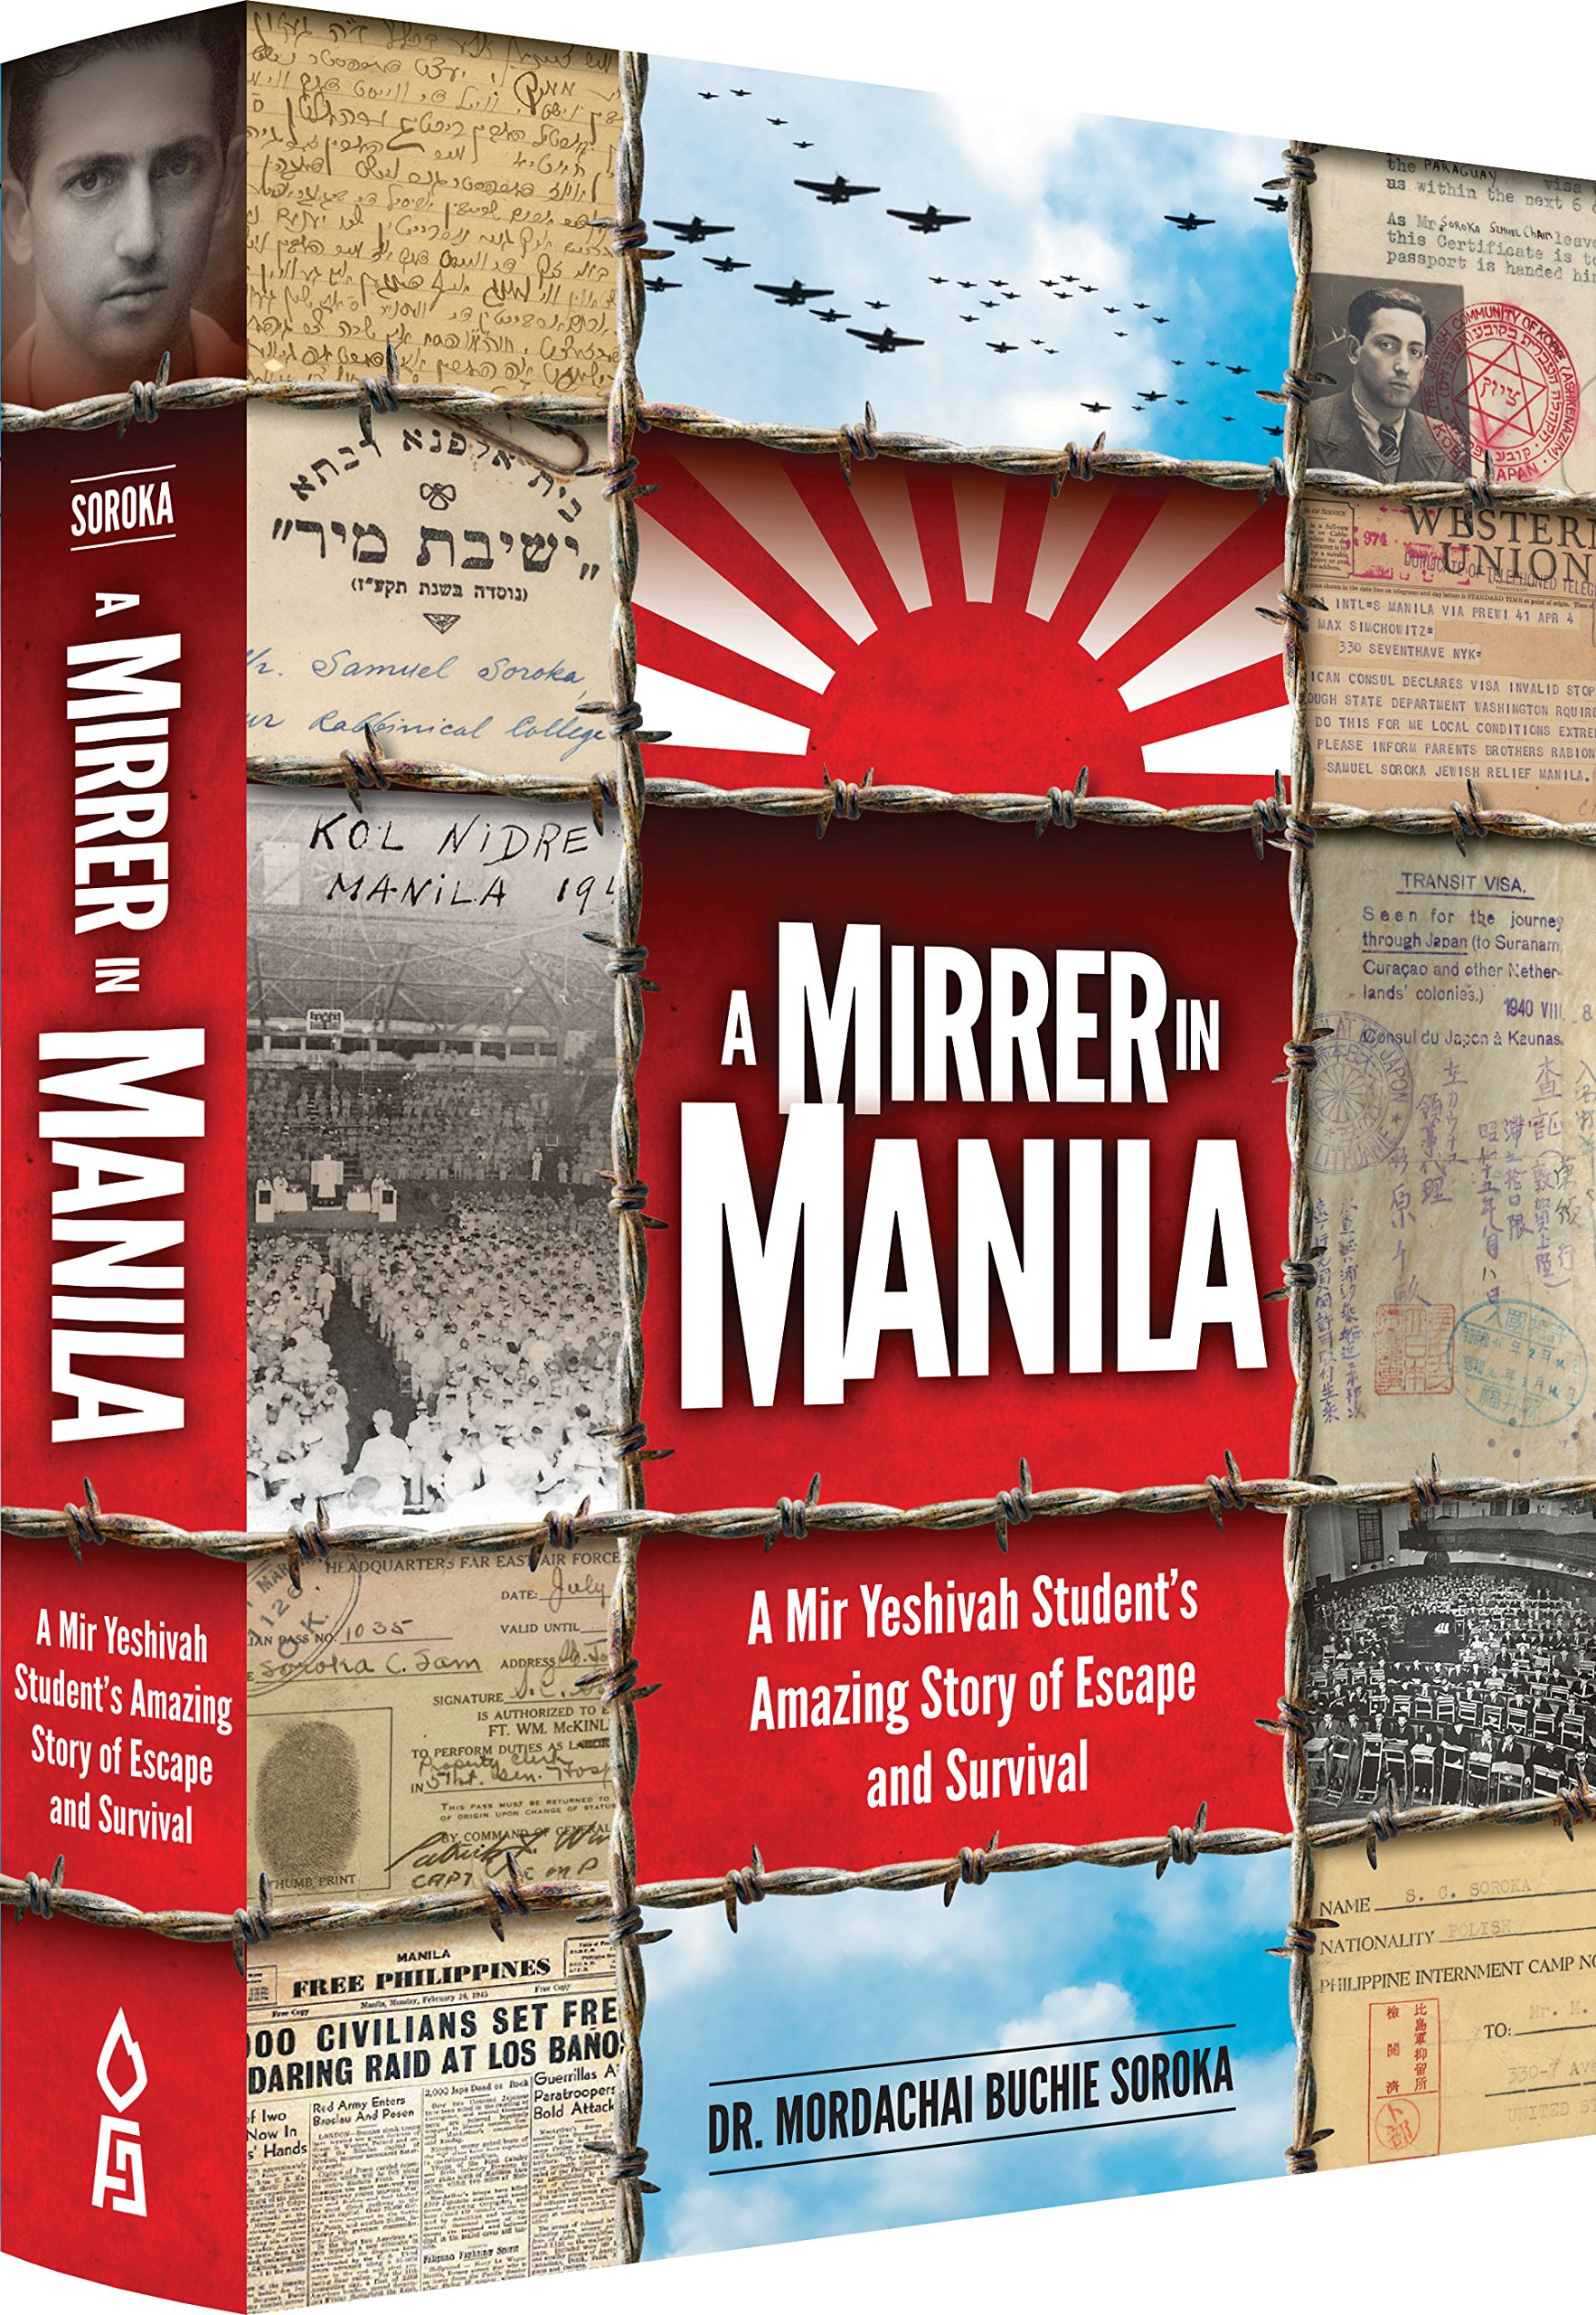 Mirrer in Manilla: A Mir Yeshivah Student's Amazing Story of Escape and Survival by Dr. Mordachai Buchie Soroka